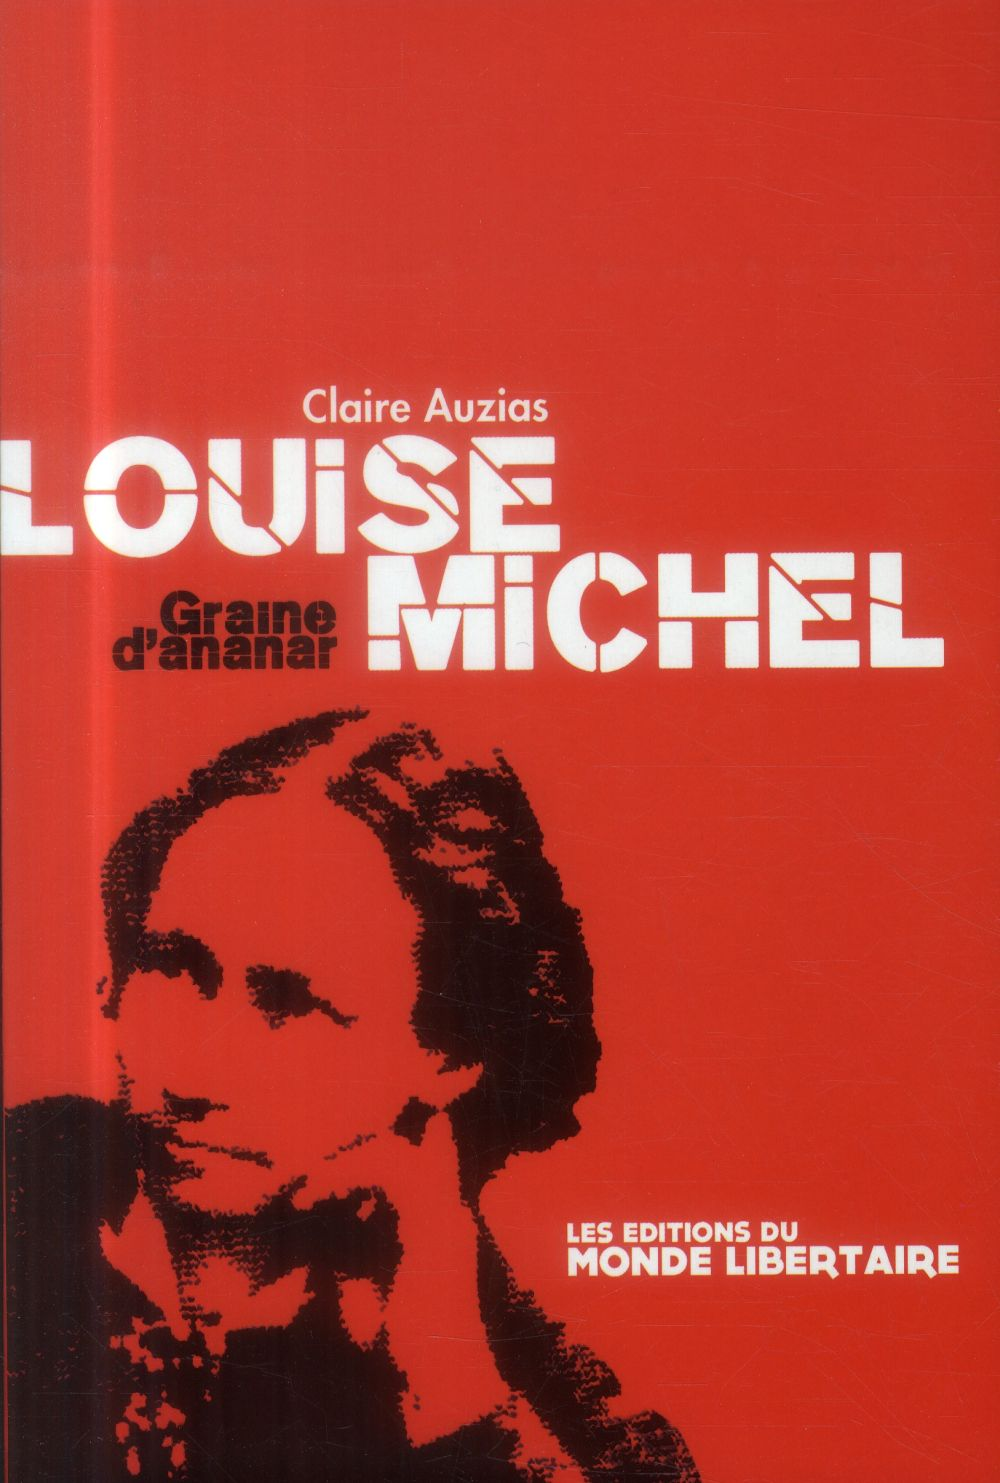 LOUISE MICHEL (NED 2014)